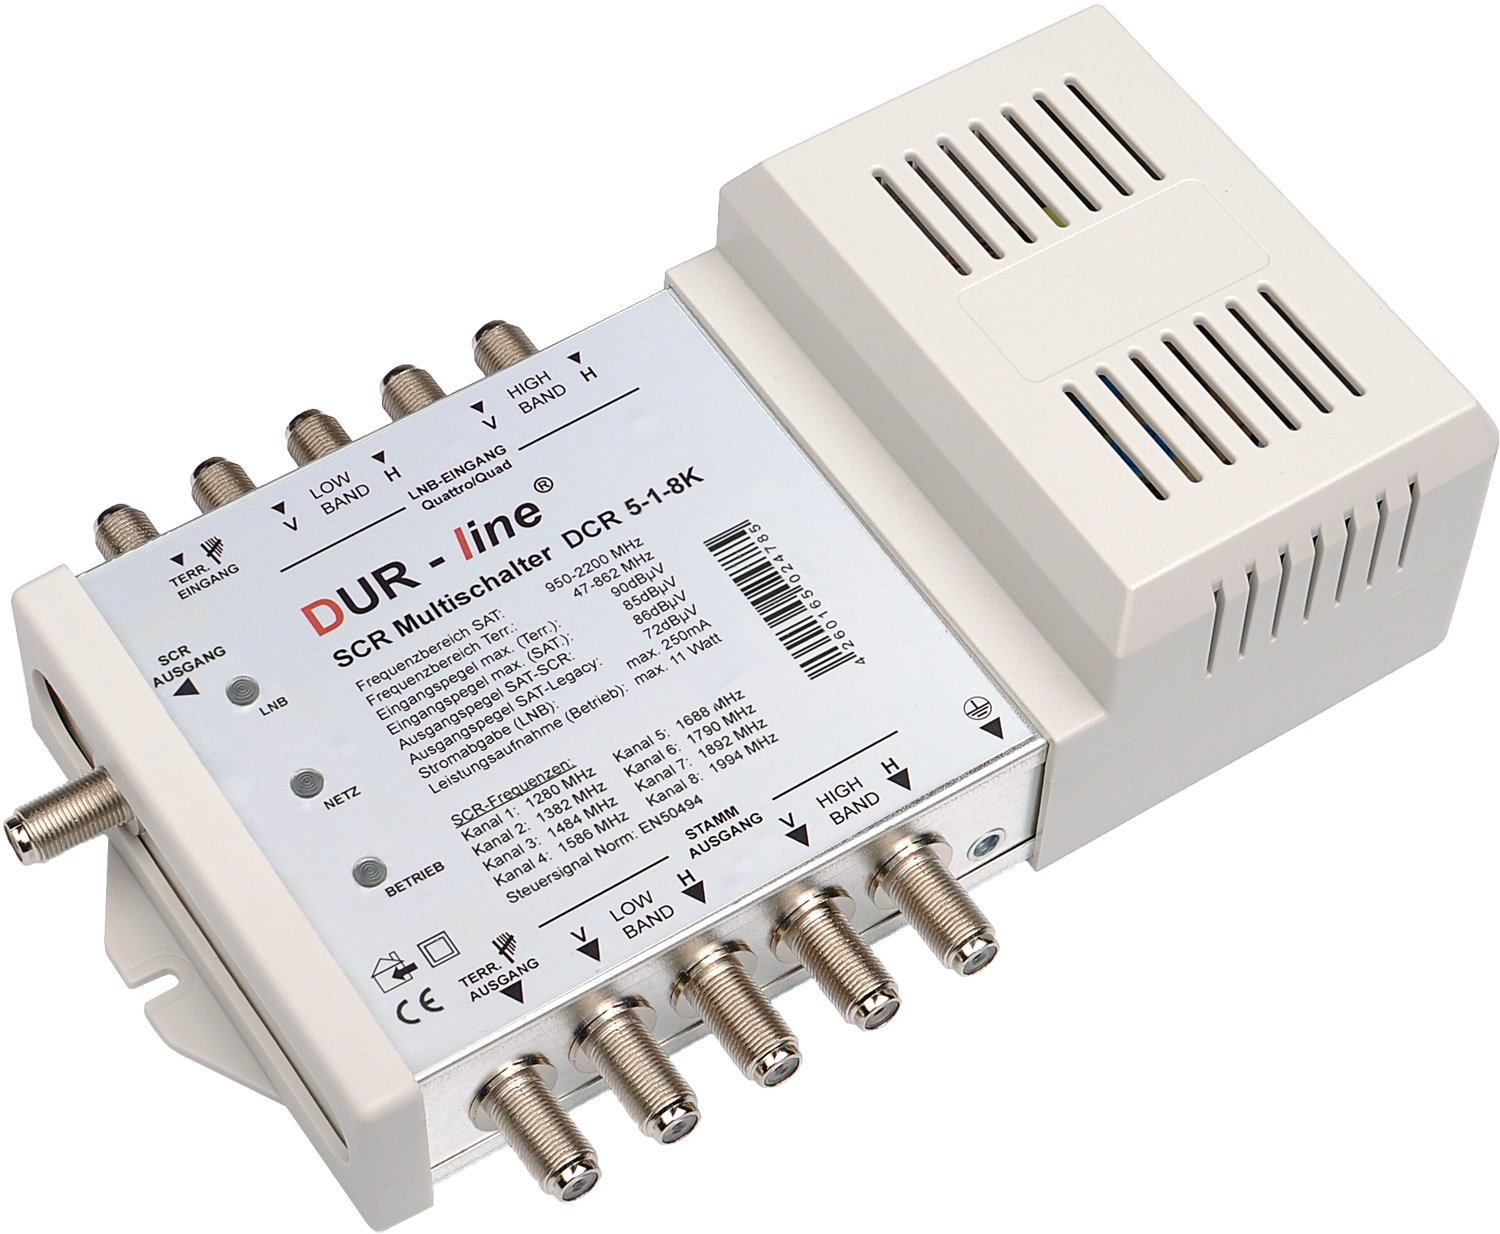 Dur Line Dcr 5 Scr Switch Series Single Solution For C Band Lnb Circuit Diagram Electronics